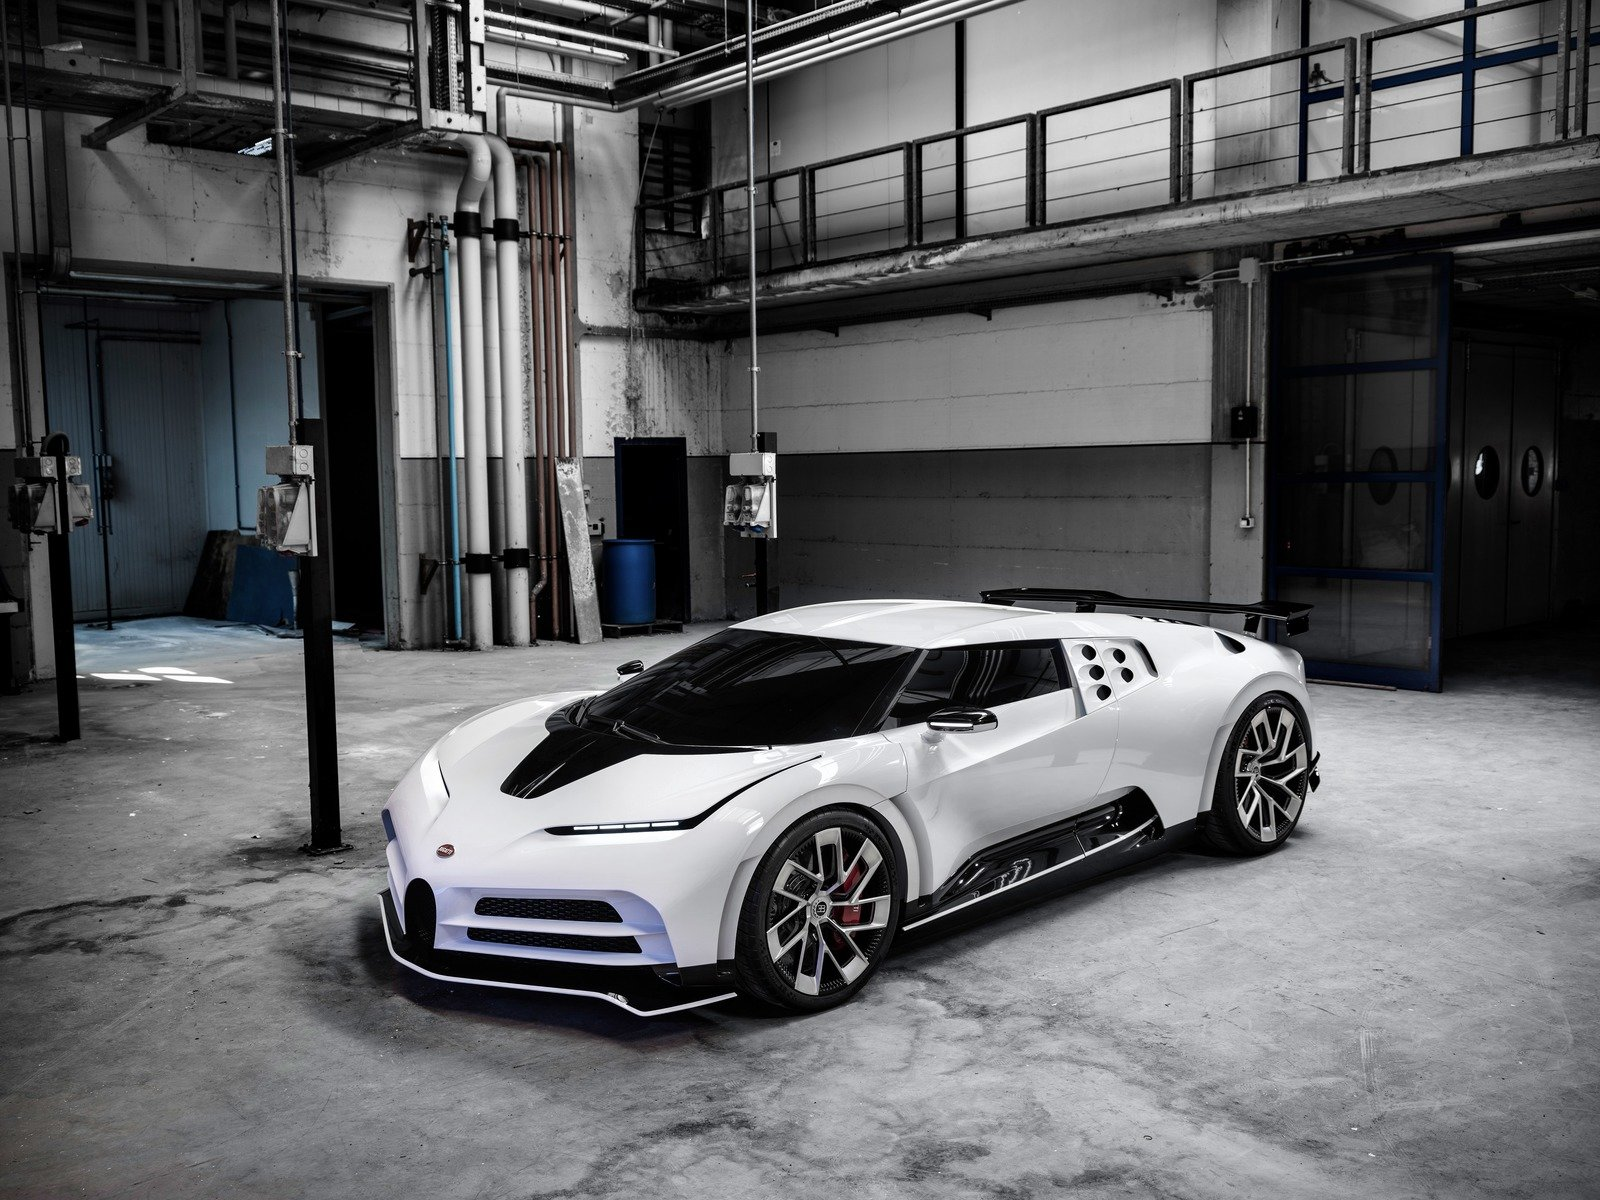 bugatti morphed the legendary eb110 into a new century